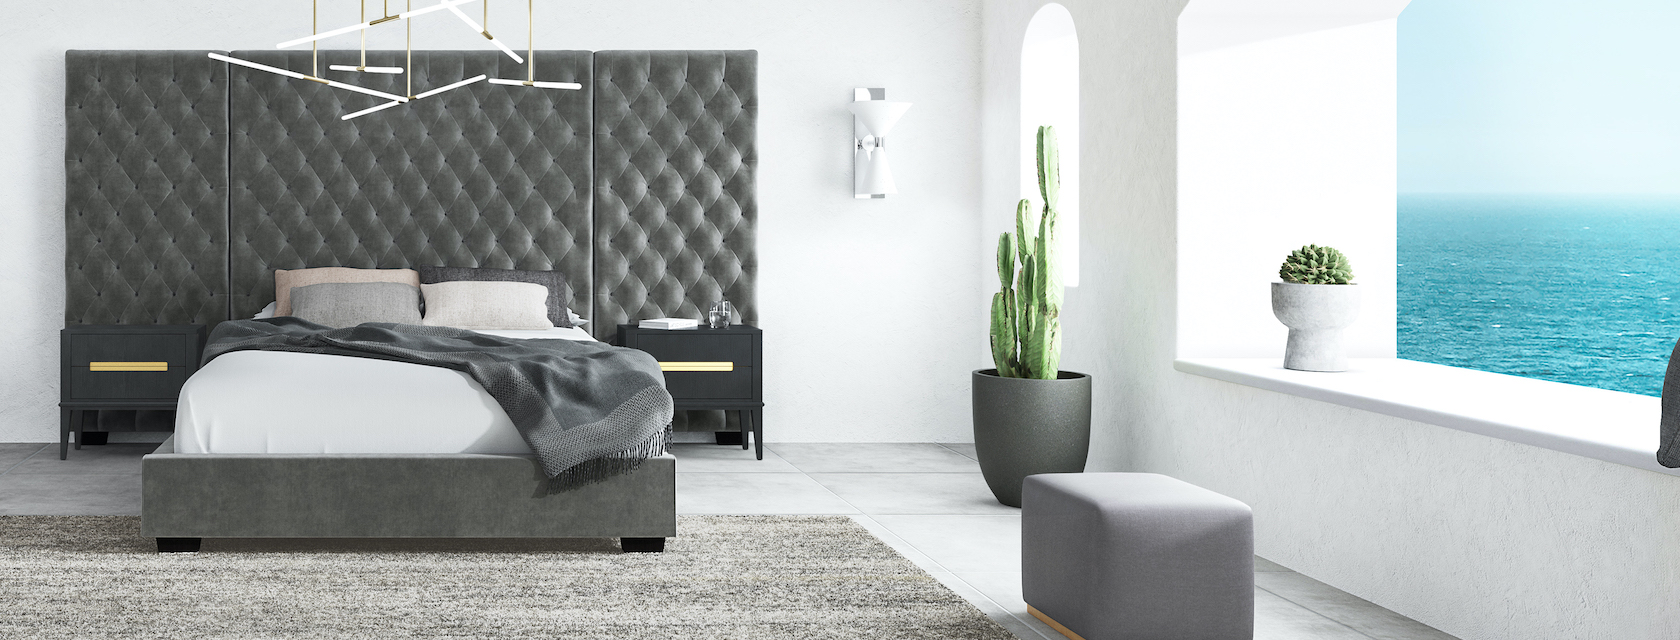 the marbella bed frame by saatva review